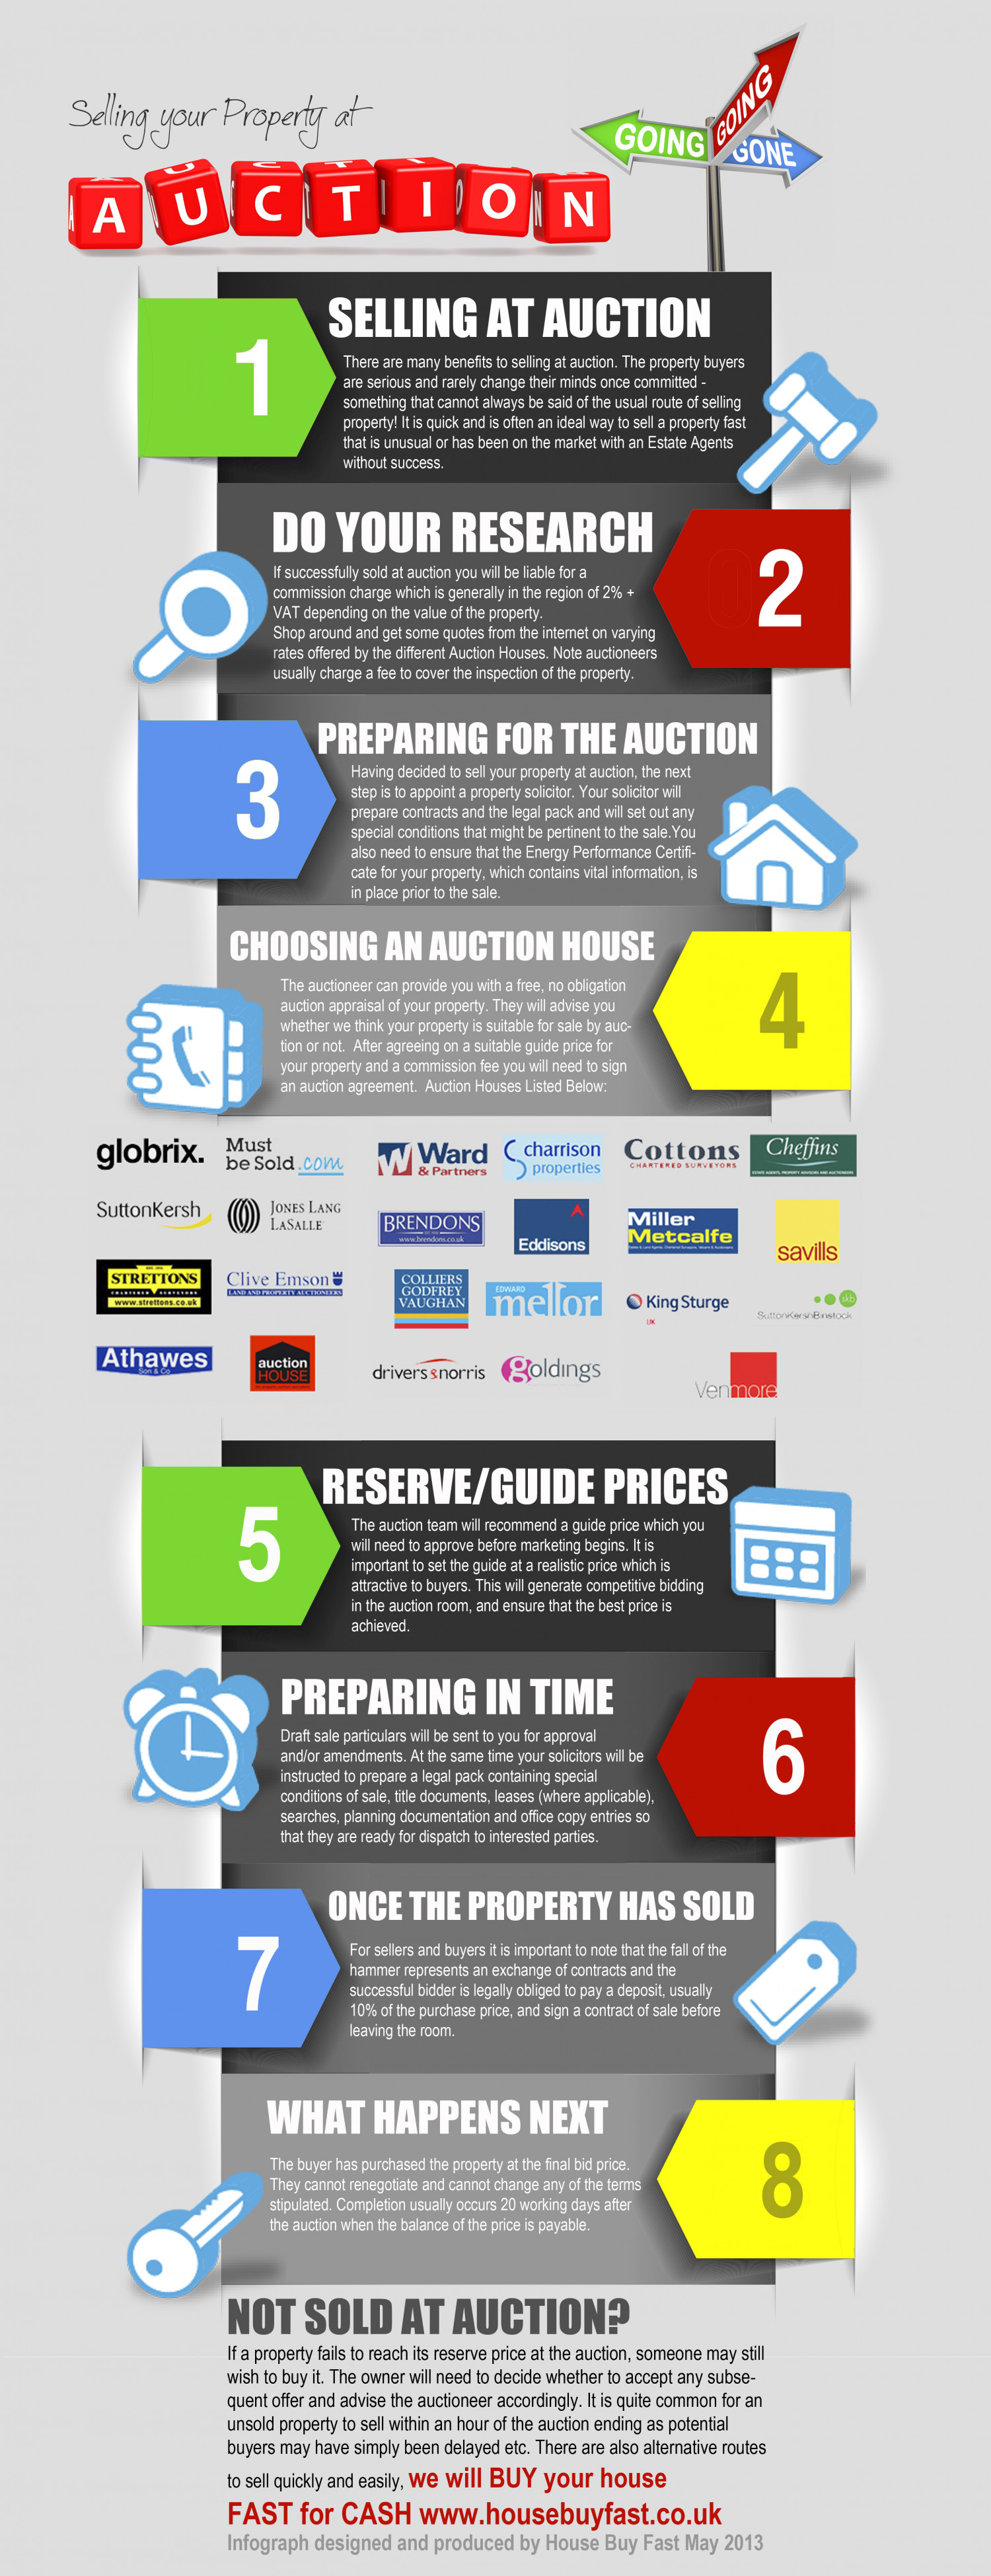 Selling Your Property At Auction Infographic